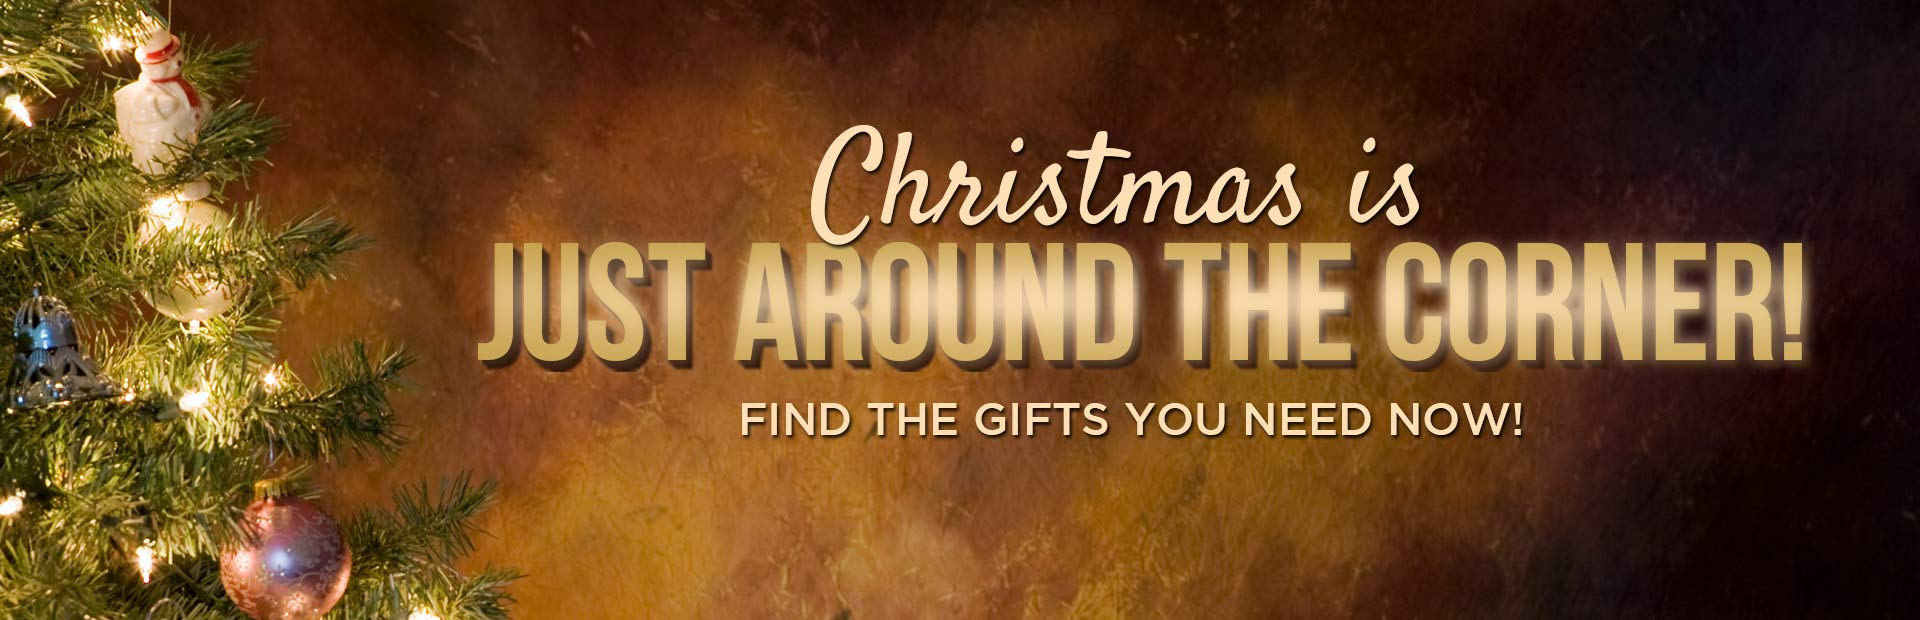 Christmas is just around the corner! Find the gifts you need now! Click here to shop.